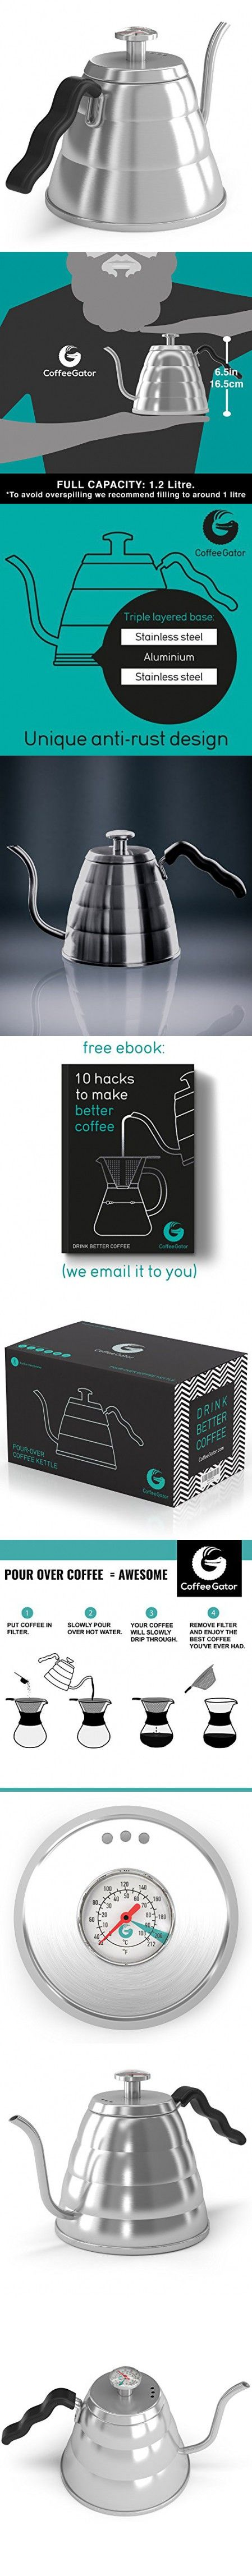 POUR OVER Coffee Kettle 1L - Stop Burning Your Beans - THERMOMETER Built-in by Coffee Gator - For Perfect Hand Drip Coffee